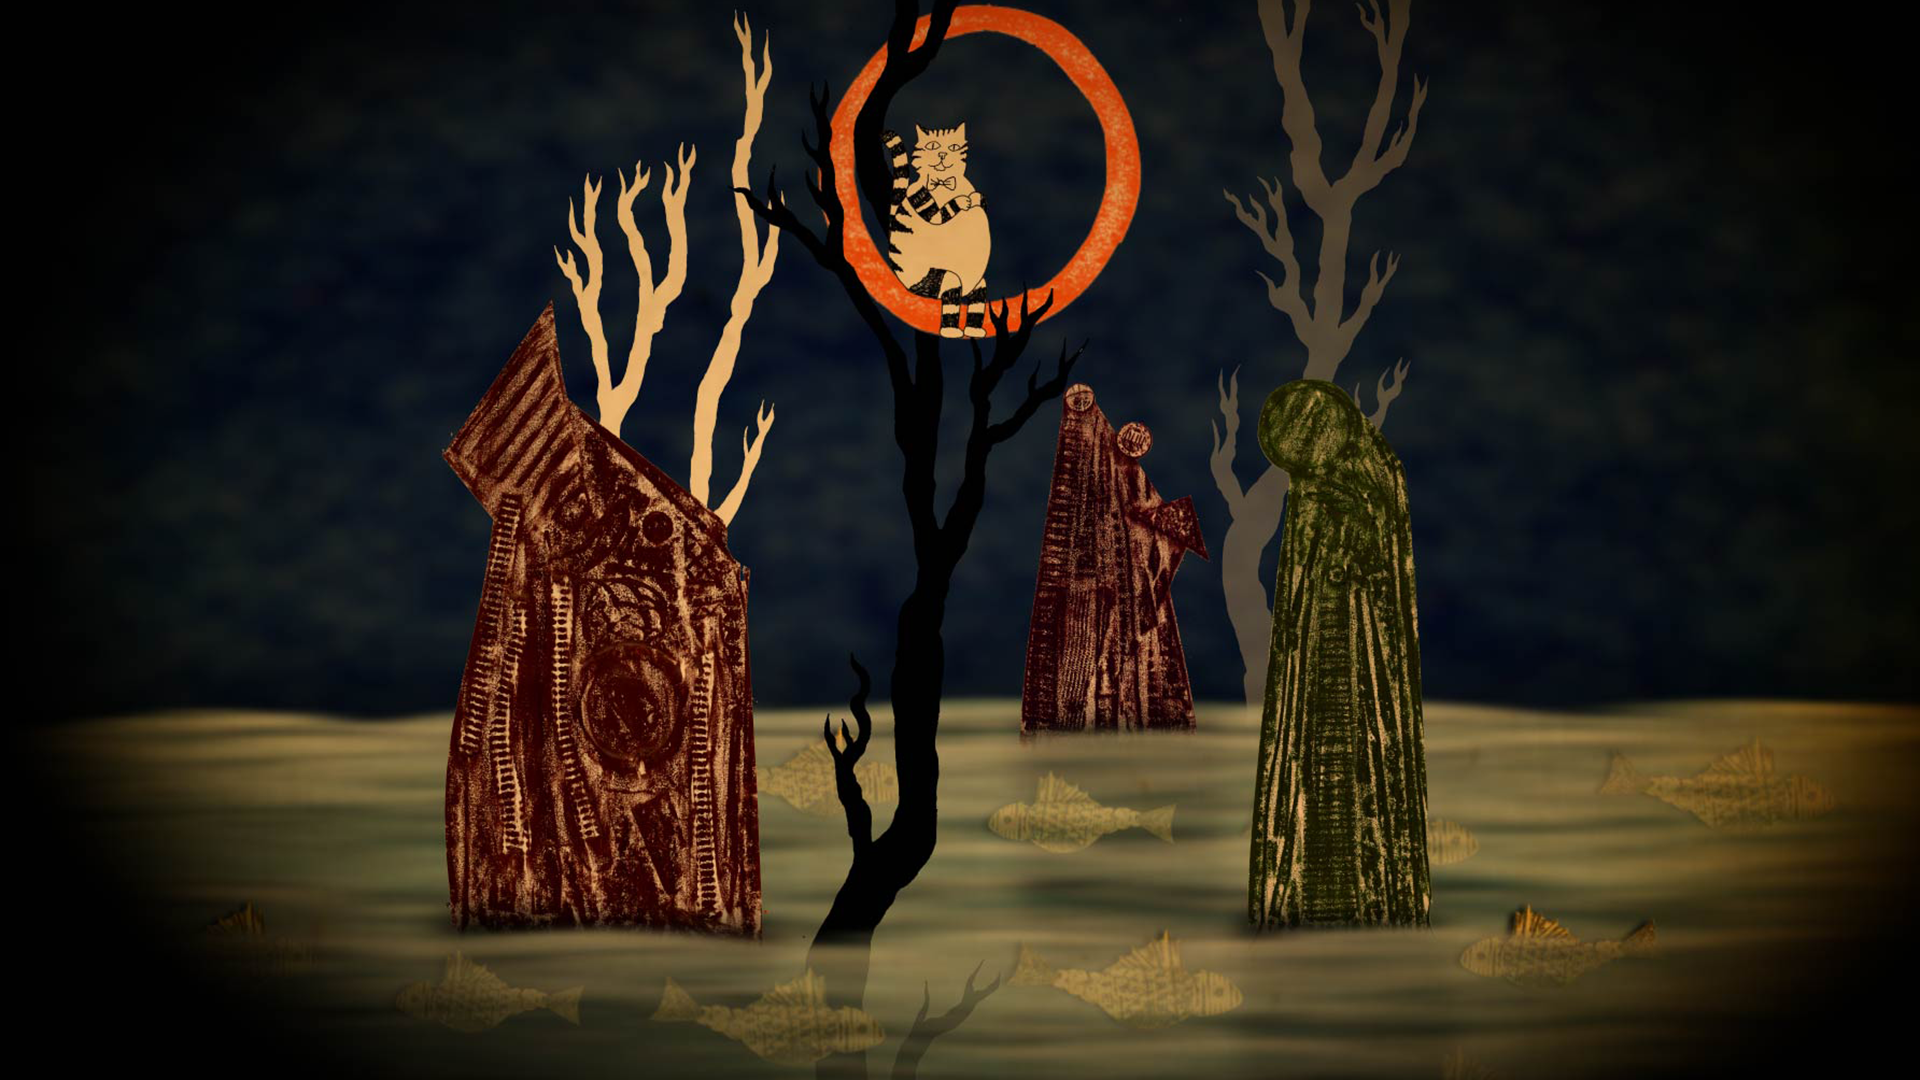 An hand drawn illustration for Decameron Nights - a cat is surrounded by an orange ring whilst sitting in a tree. The trees rise up out of misty green waters, filled with fish.